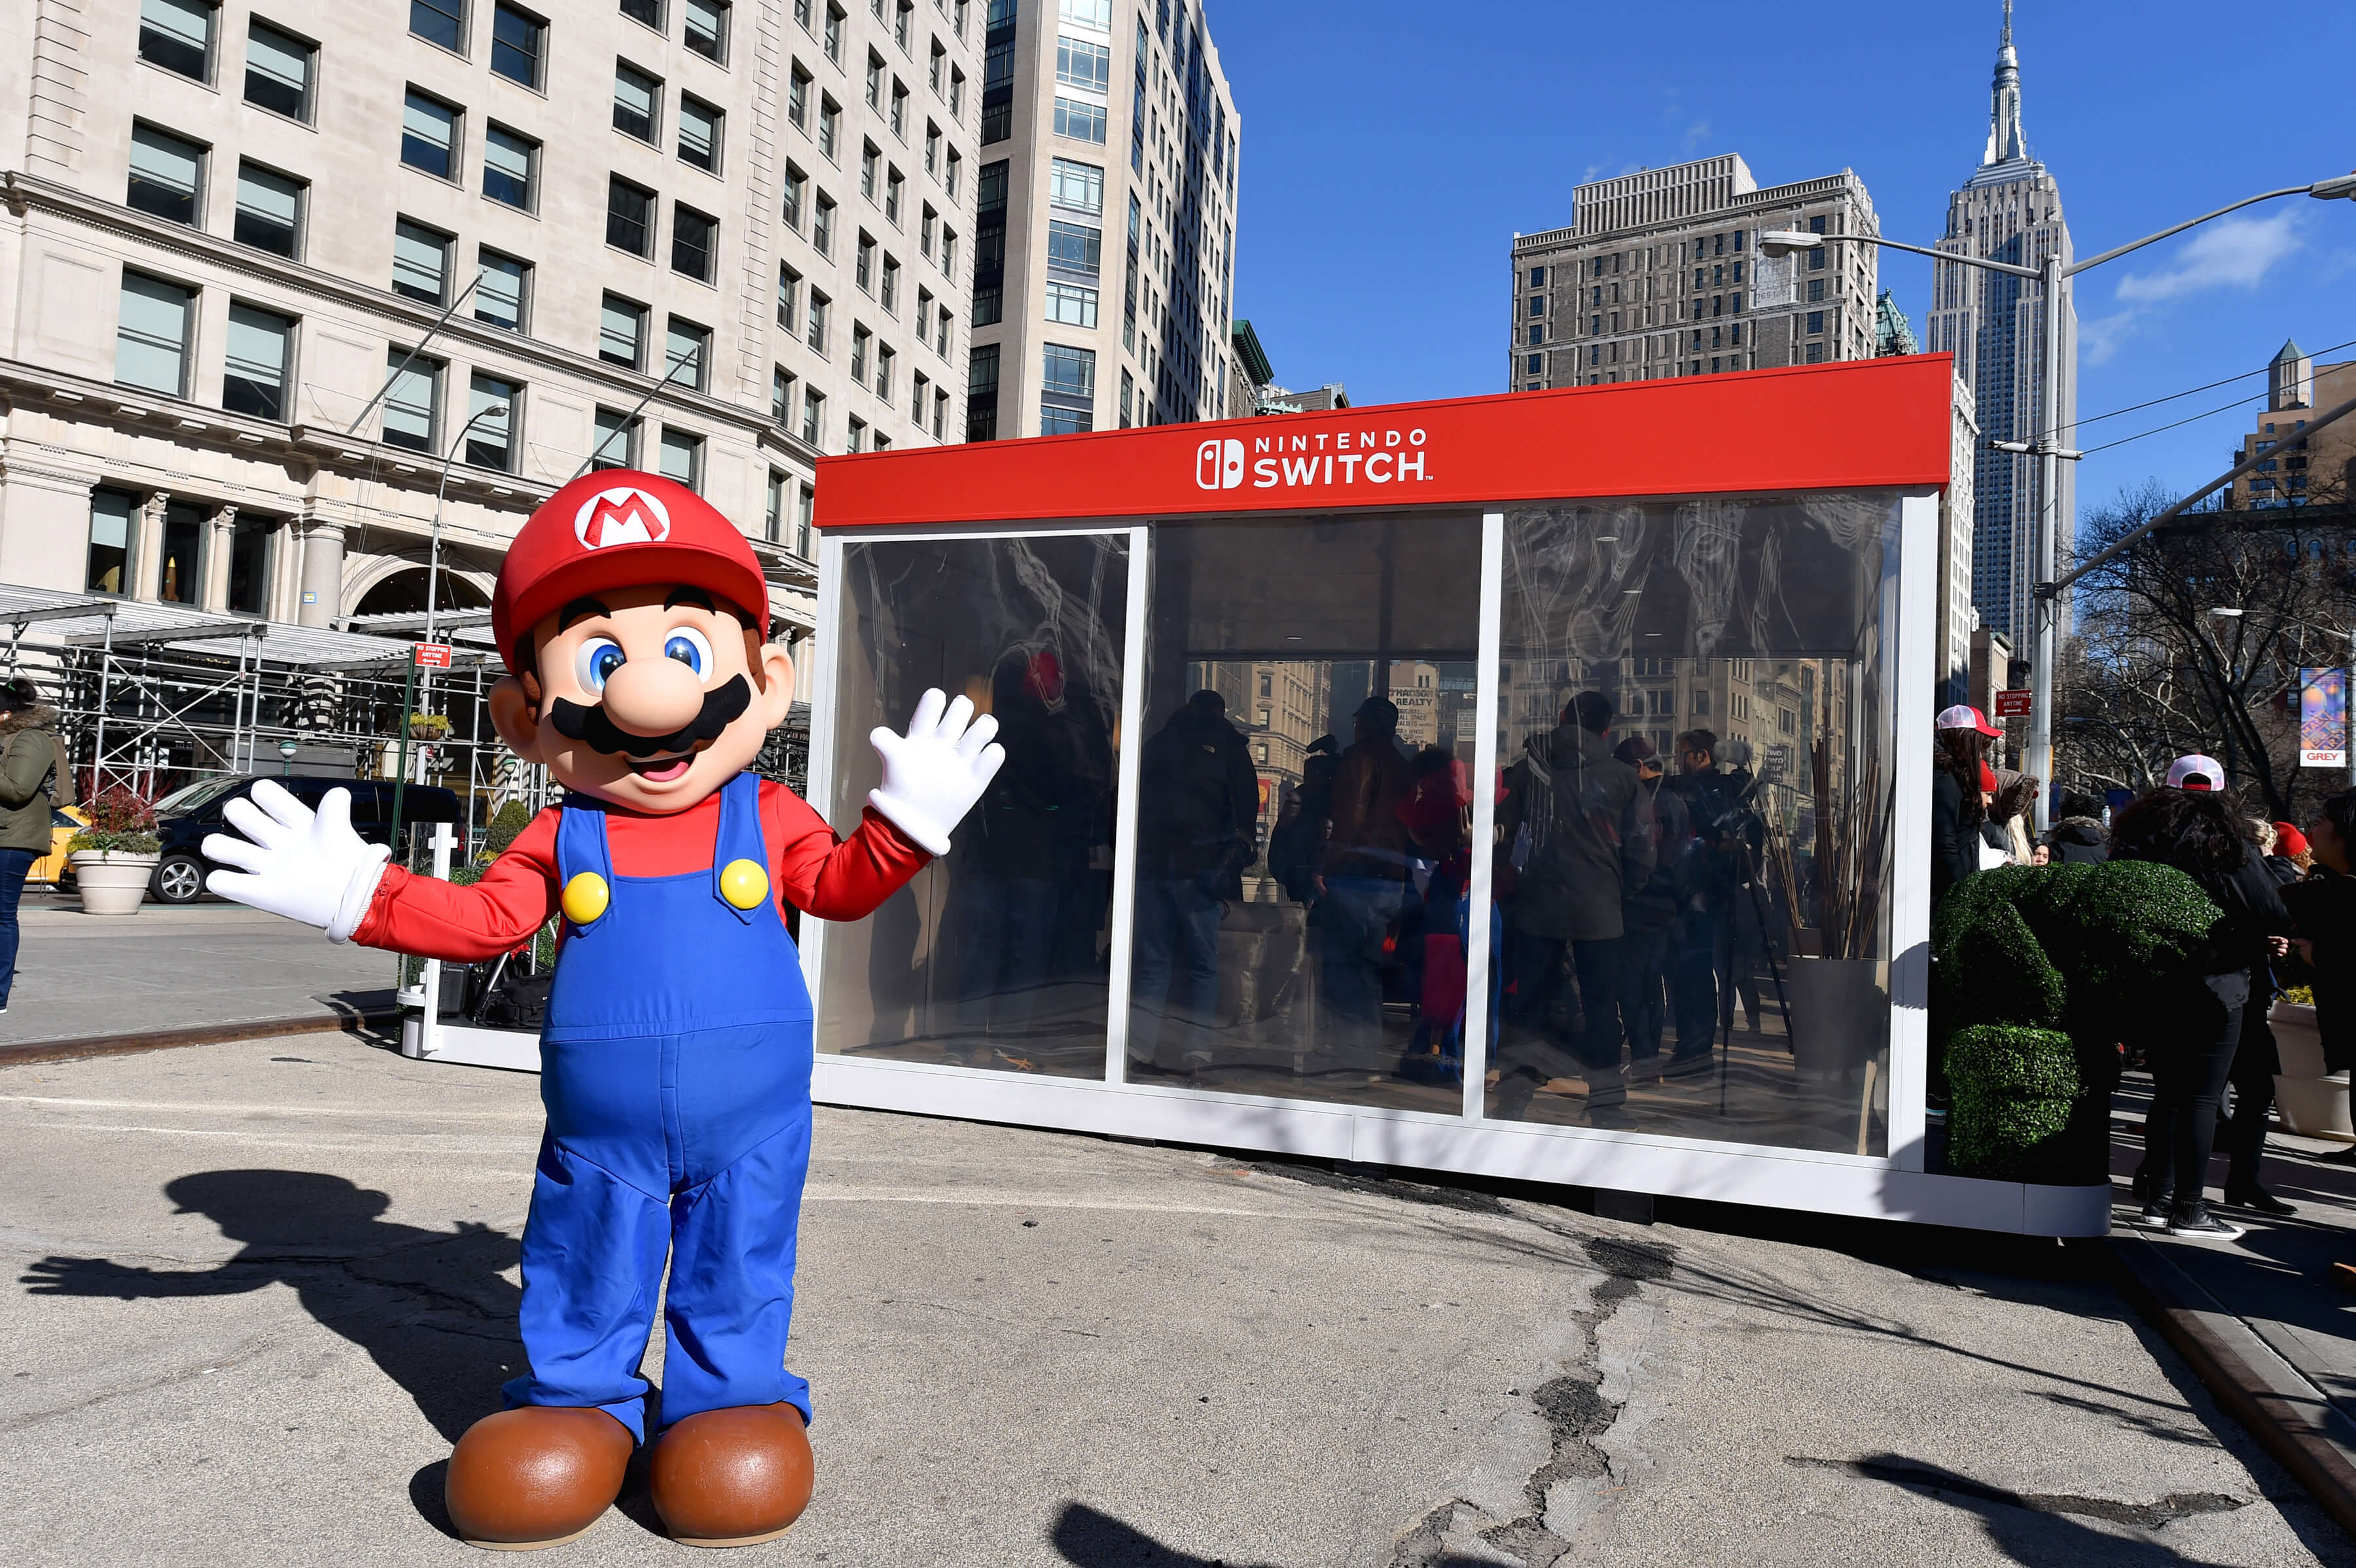 For the highly anticipated launch of the Nintendo Switch, the brand's first console release since 2012, Nintendo wanted to fuel demand. So, TMA developed a marketing strategy to create an unexpected, buzzworthy tour starting off in Madison Square Park in the heart of New York City.